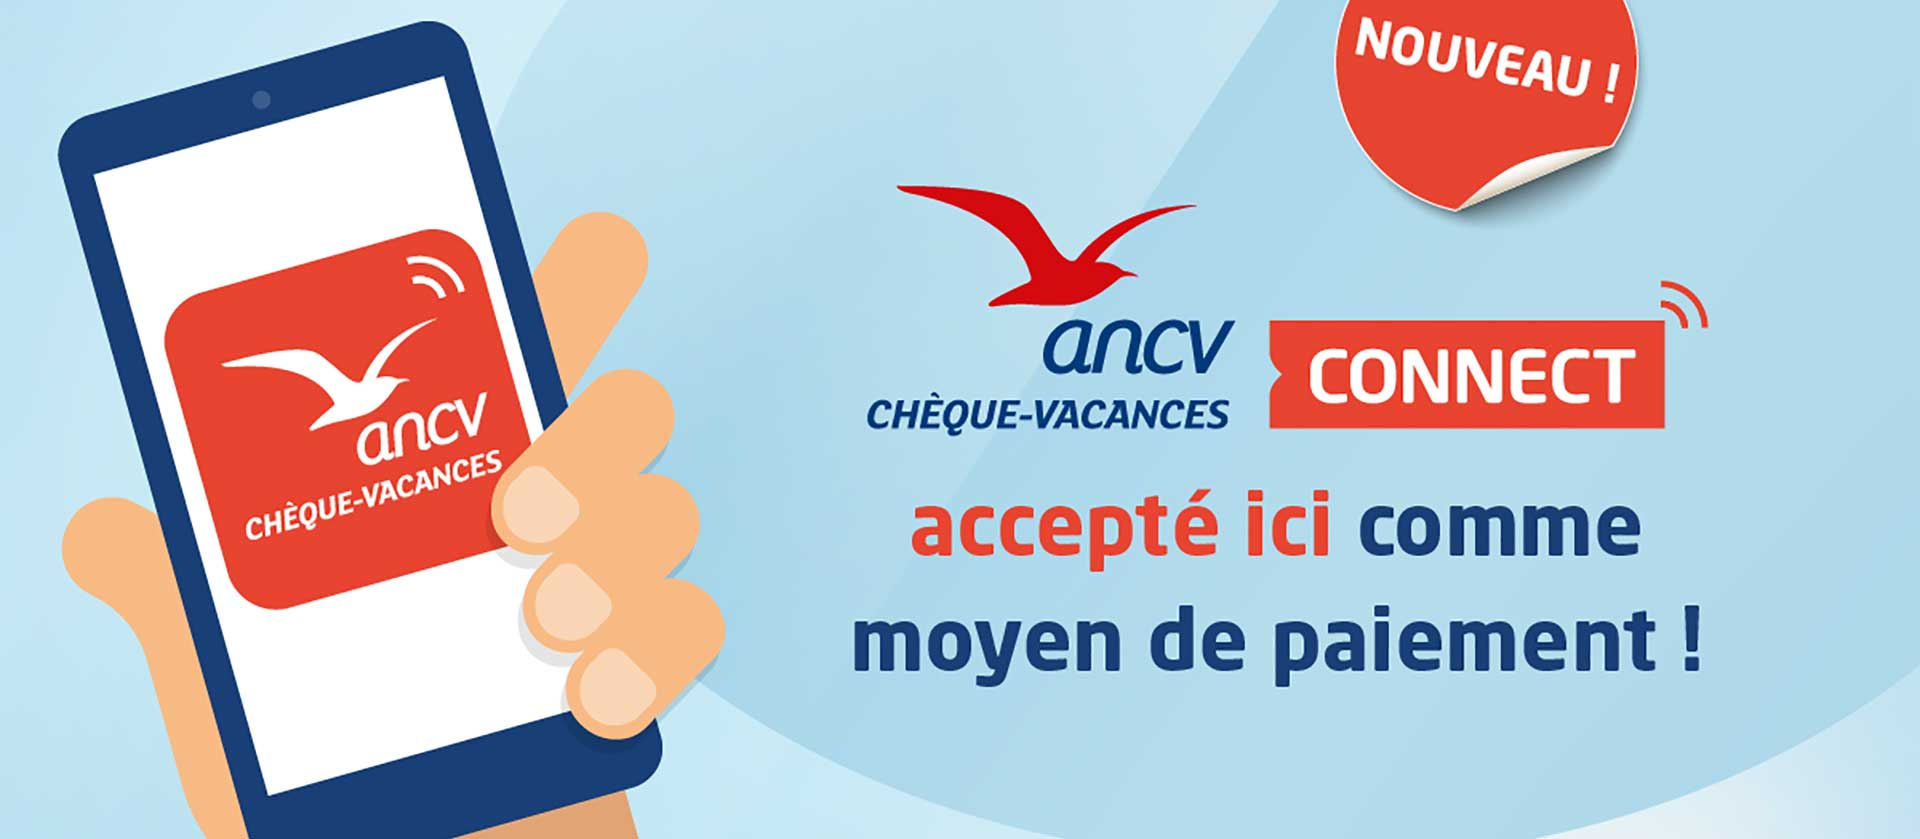 ANCV CHEQUES VACANCES CONNECT